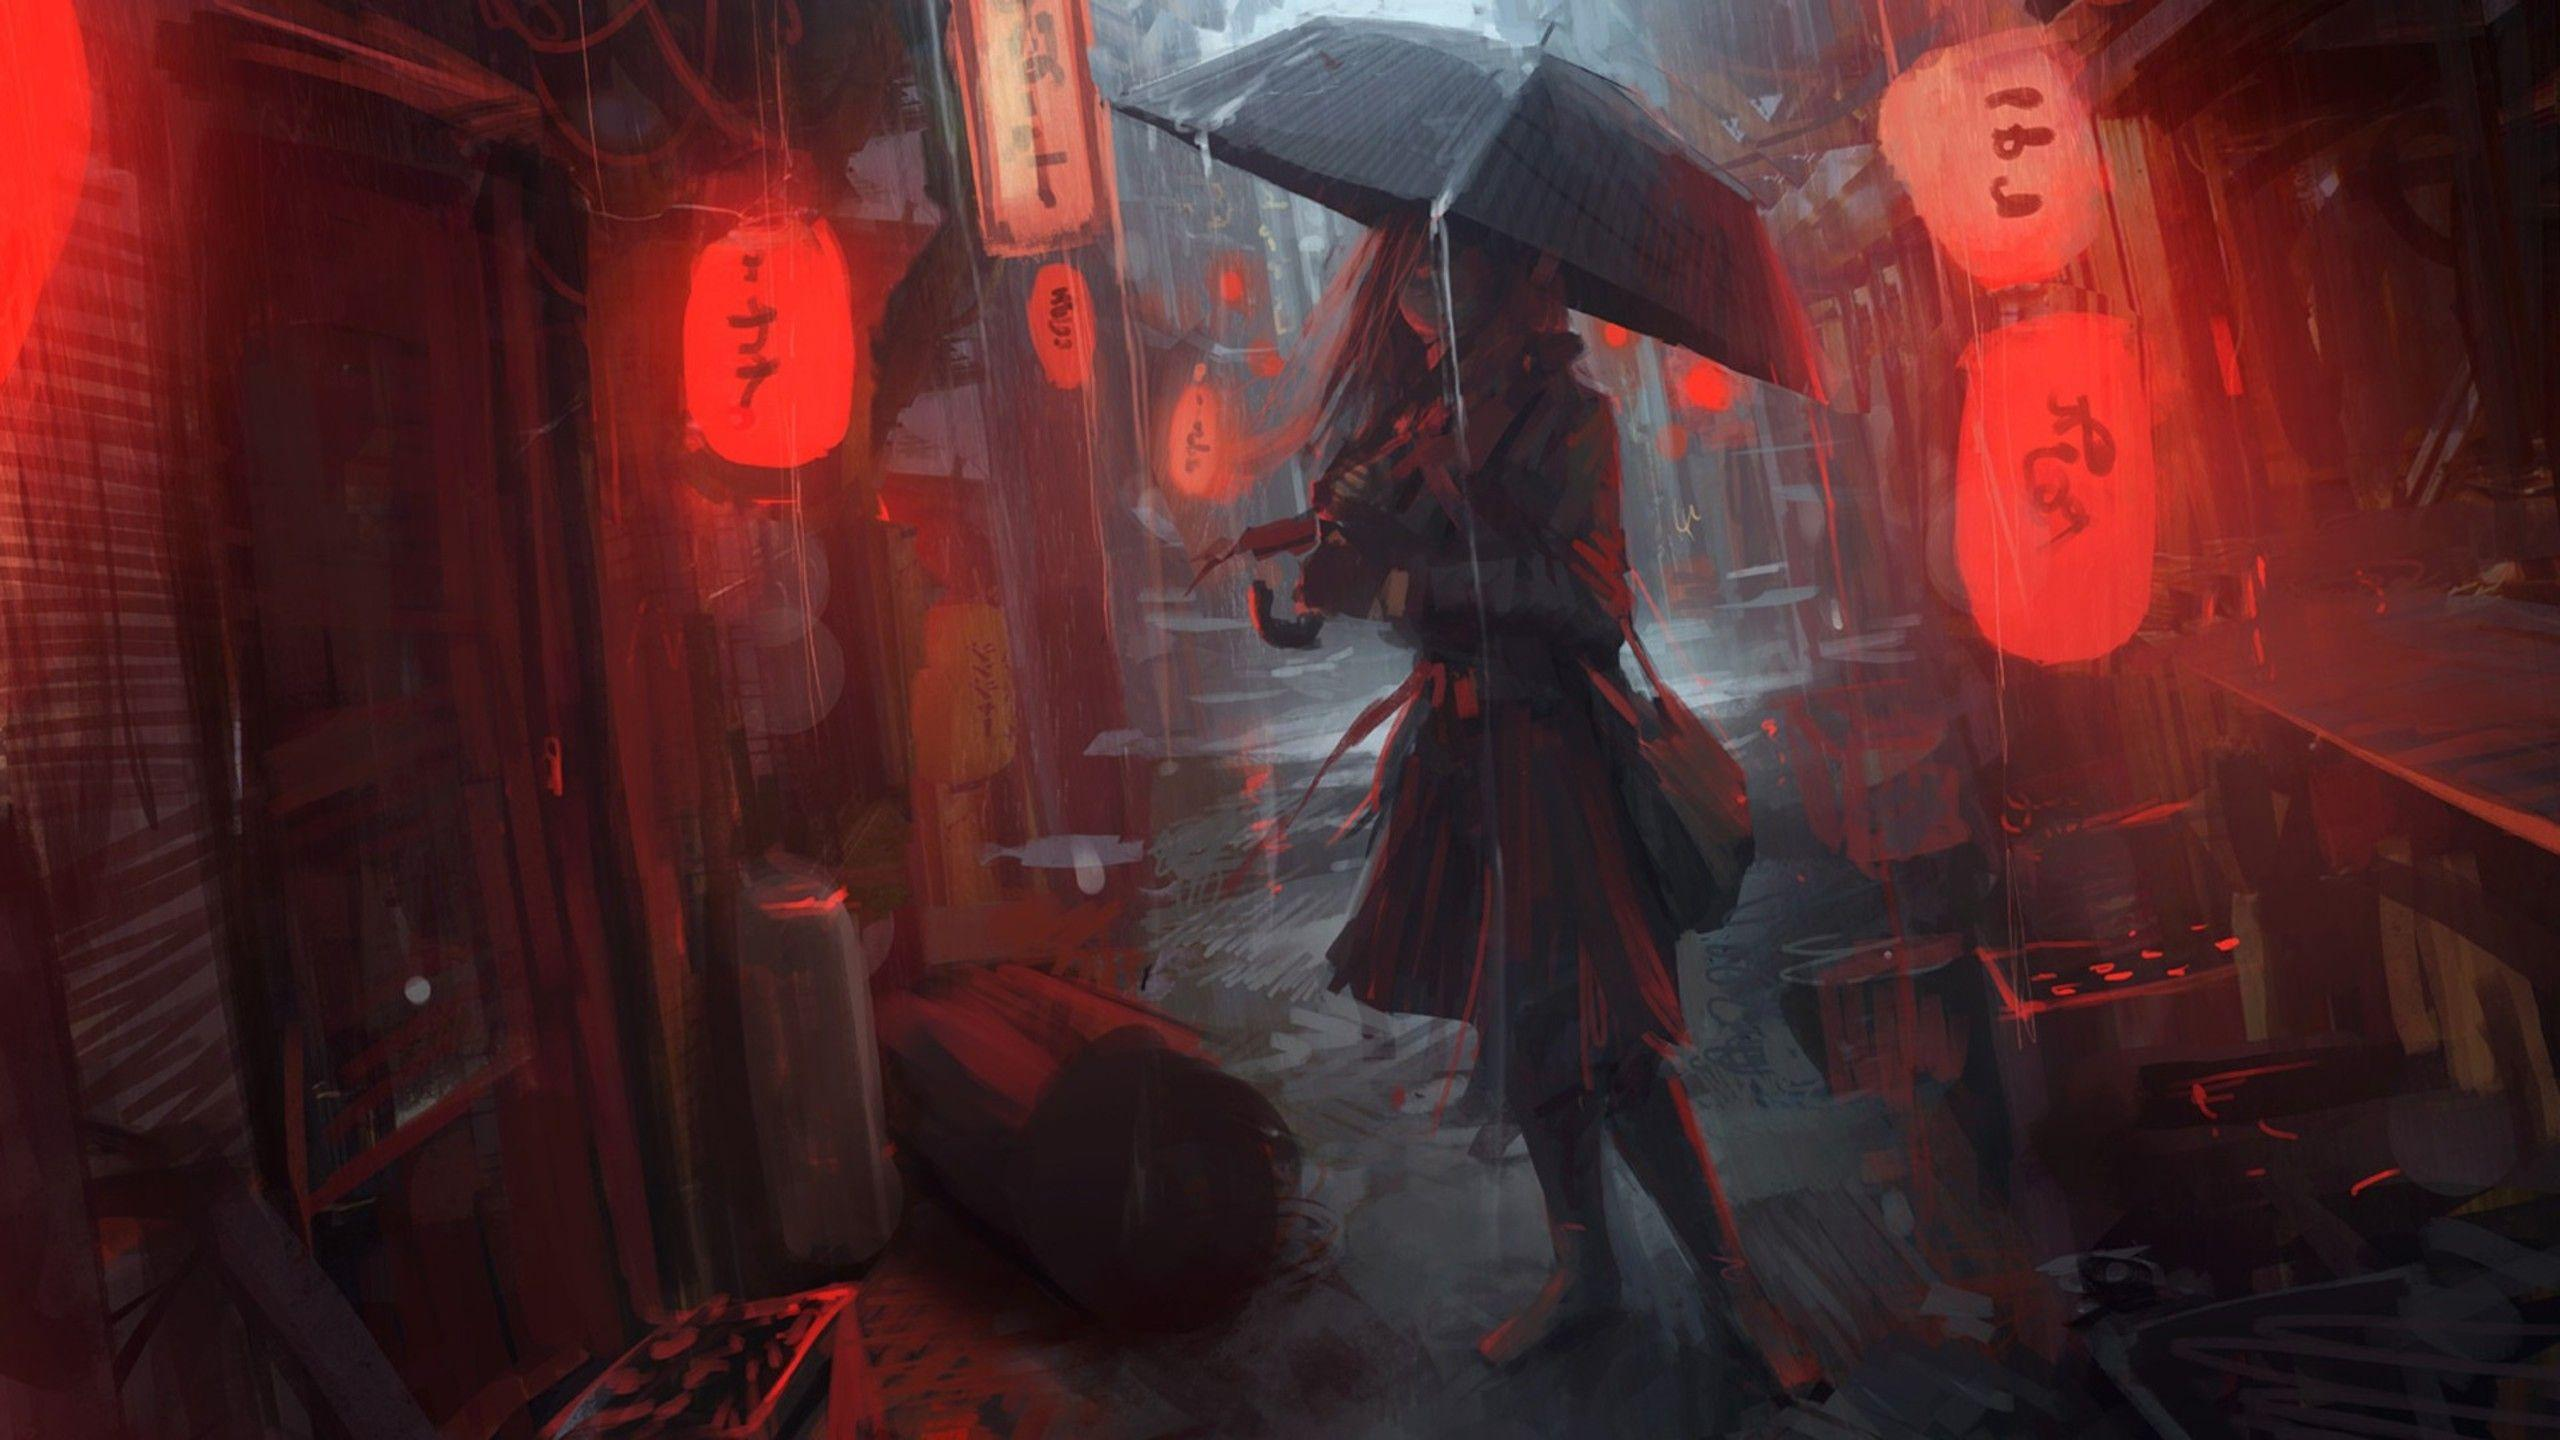 Join now to share and explore tons of collections of awesome wallpapers. Rain Anime Wallpapers - Wallpaper Cave